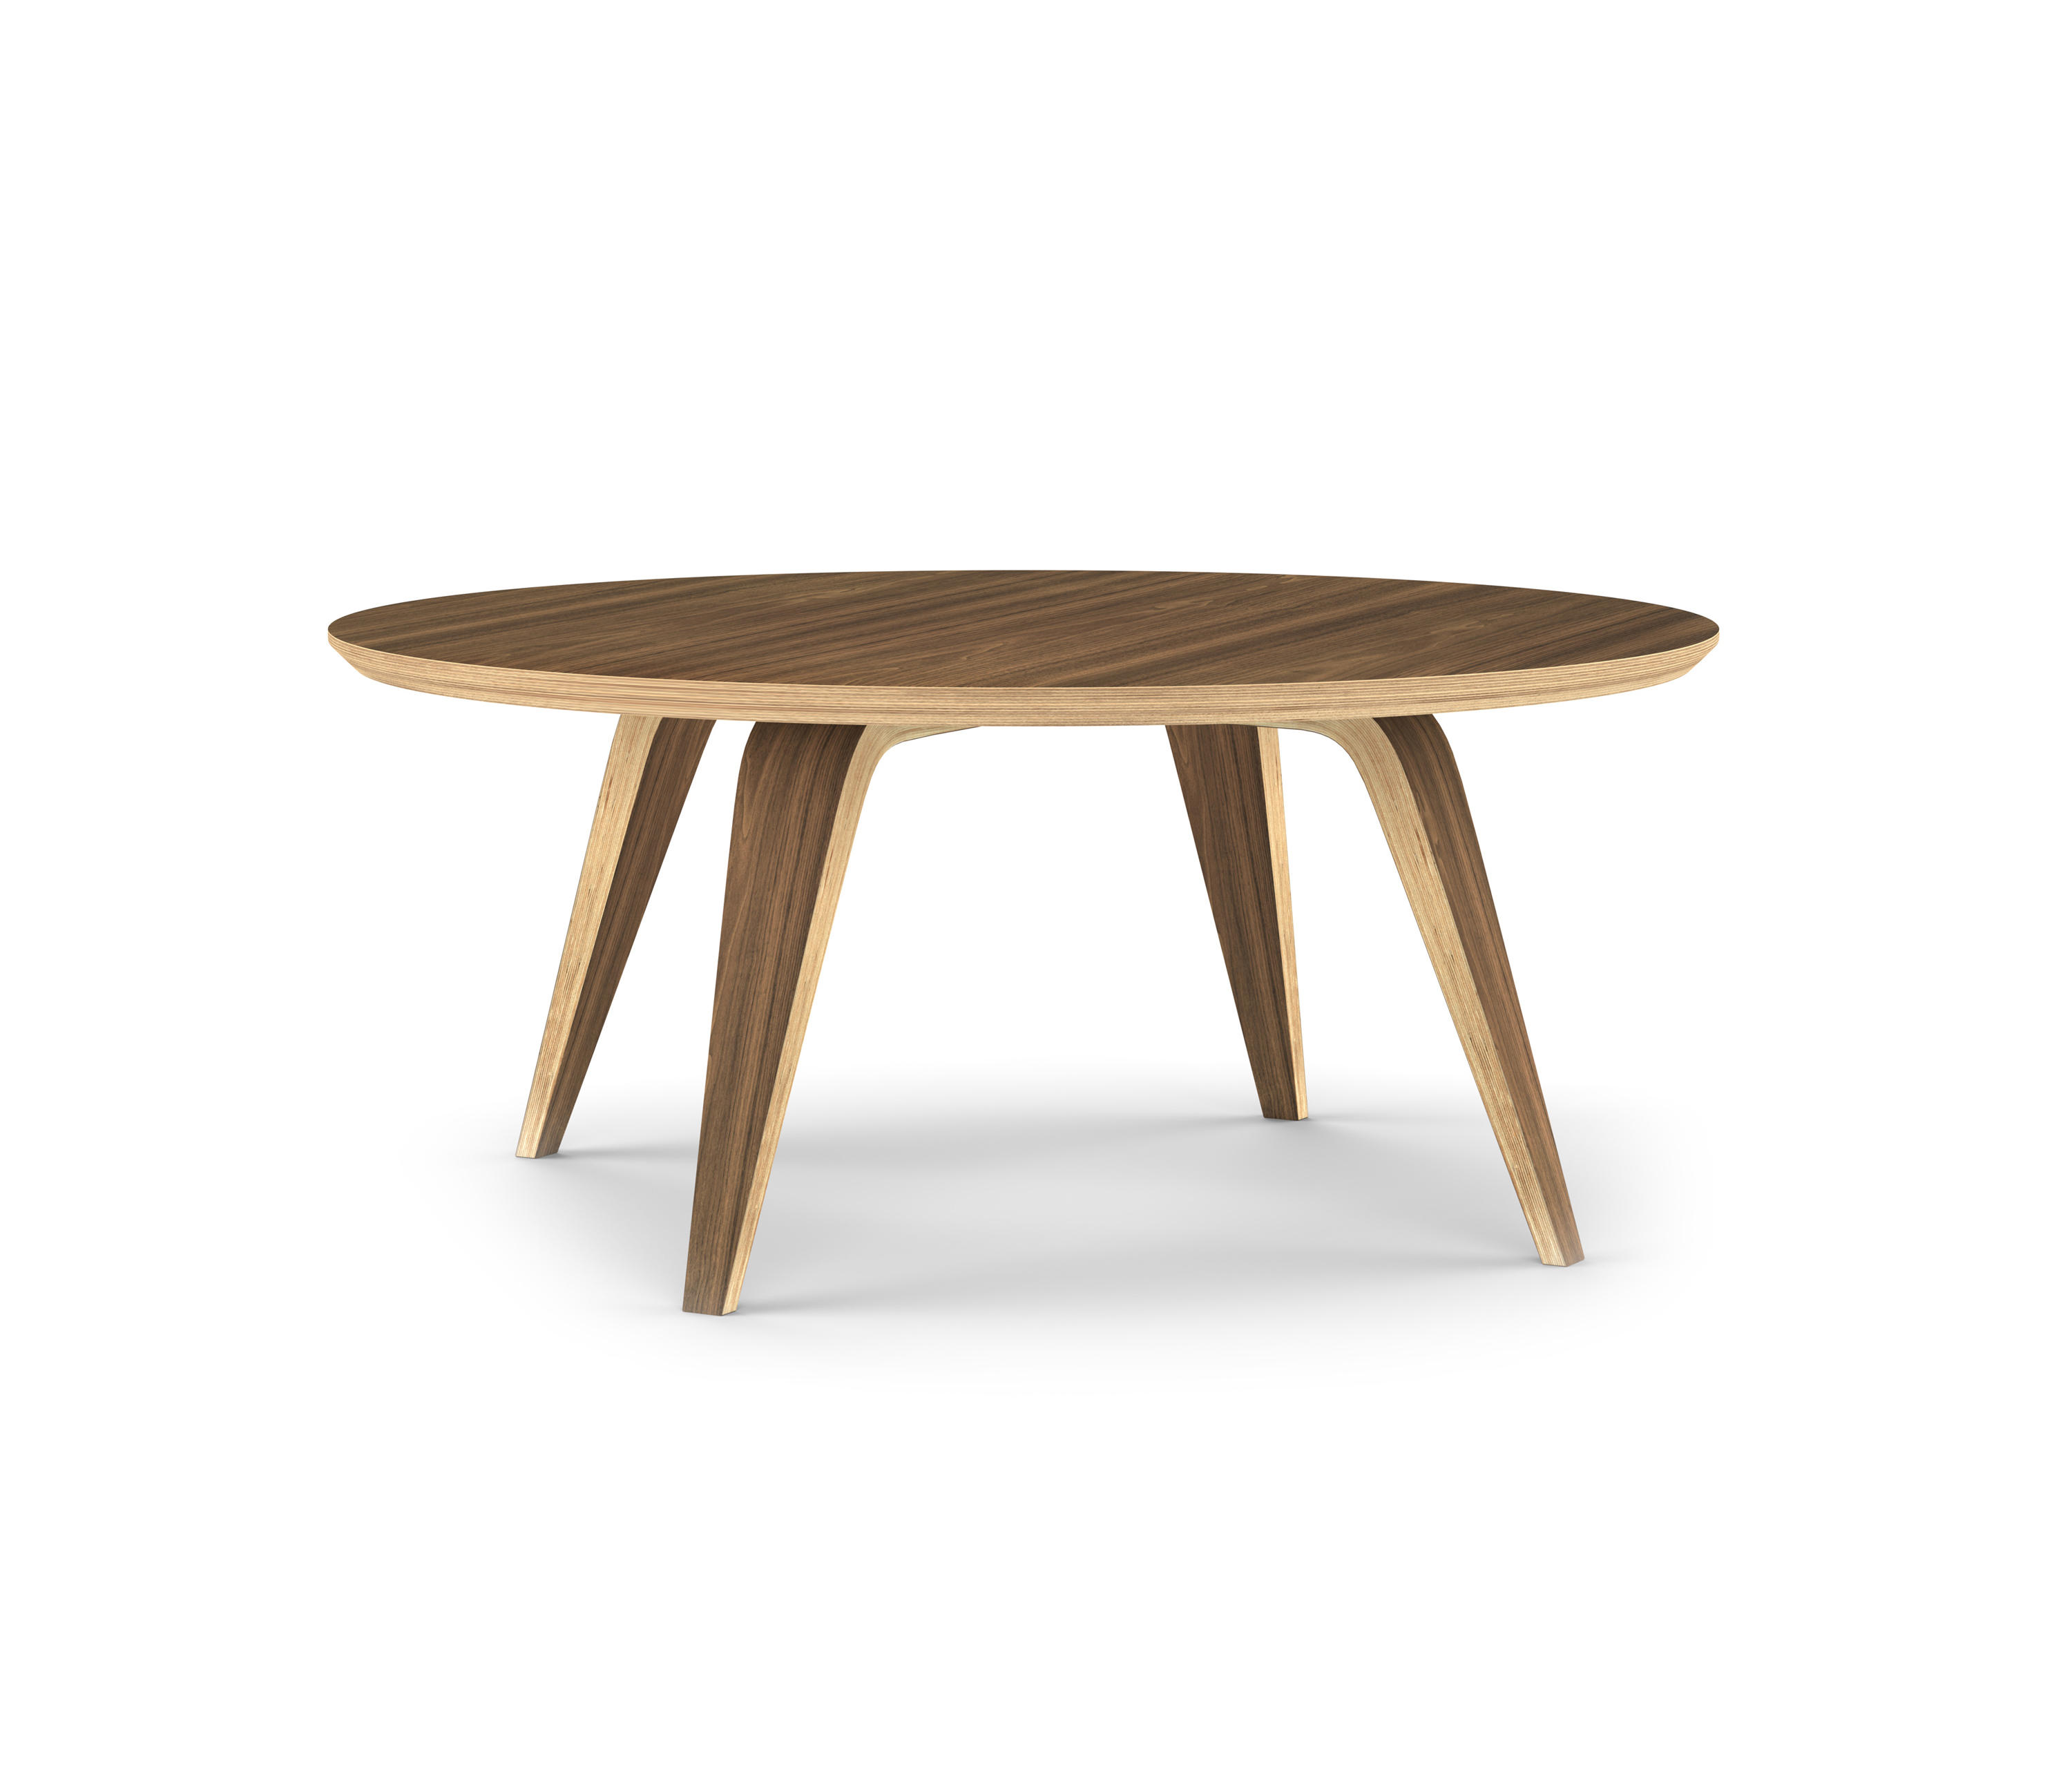 CHERNER COFFEE TABLE Restaurant tables from Cherner